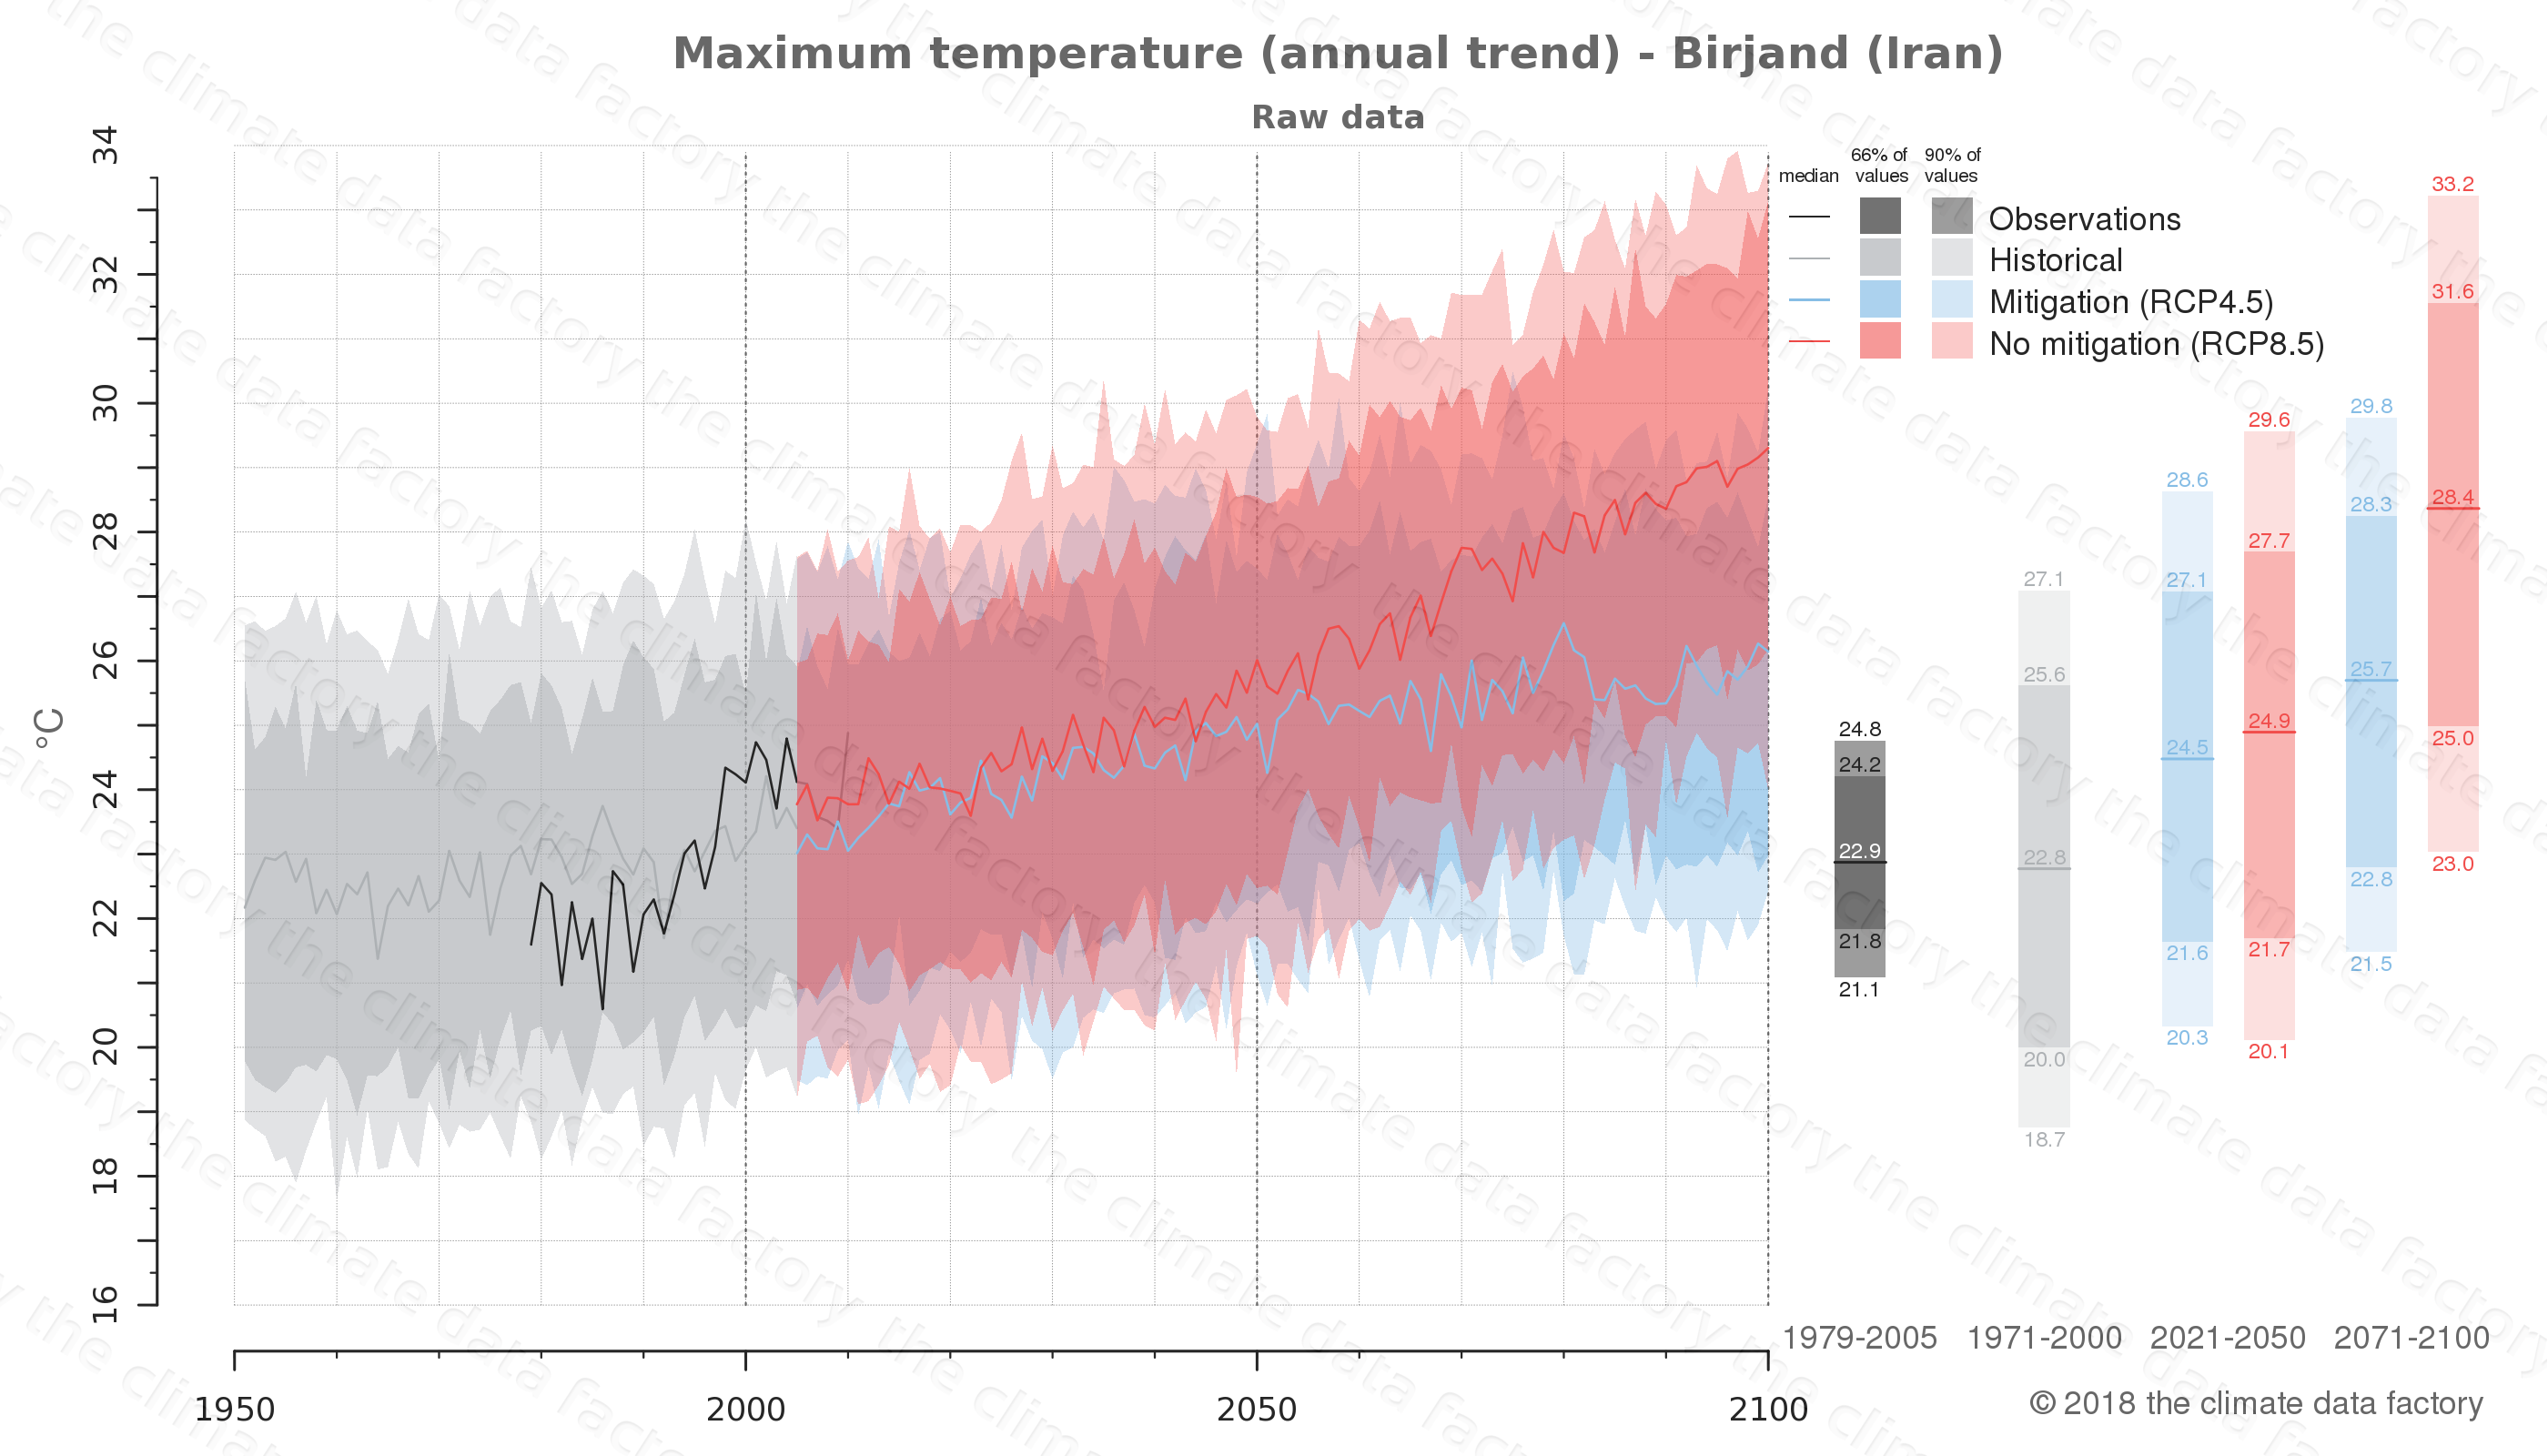 climate change data policy adaptation climate graph city data maximum-temperature birjand iran